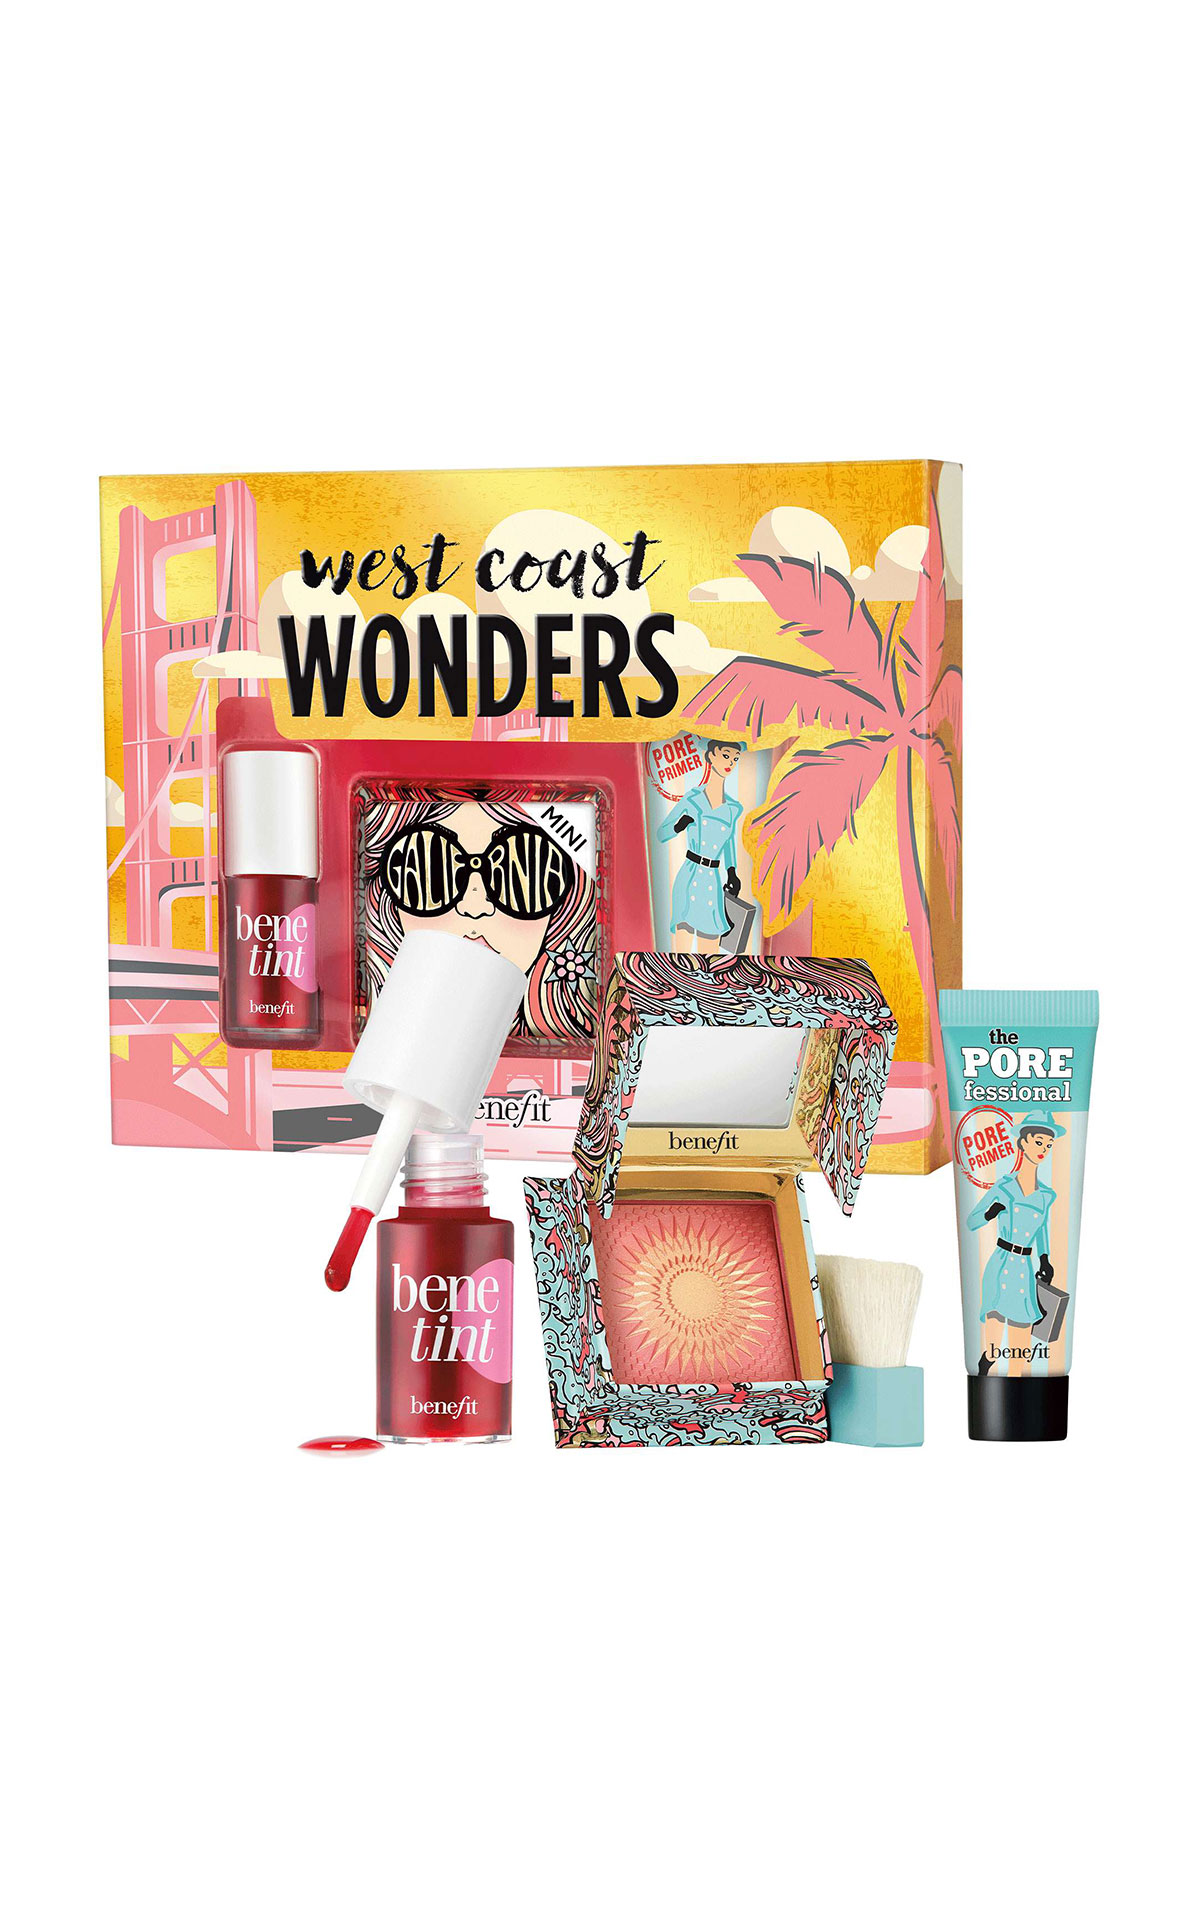 Benefit Cosmetics West Coast Wonders gift set from Bicester Village